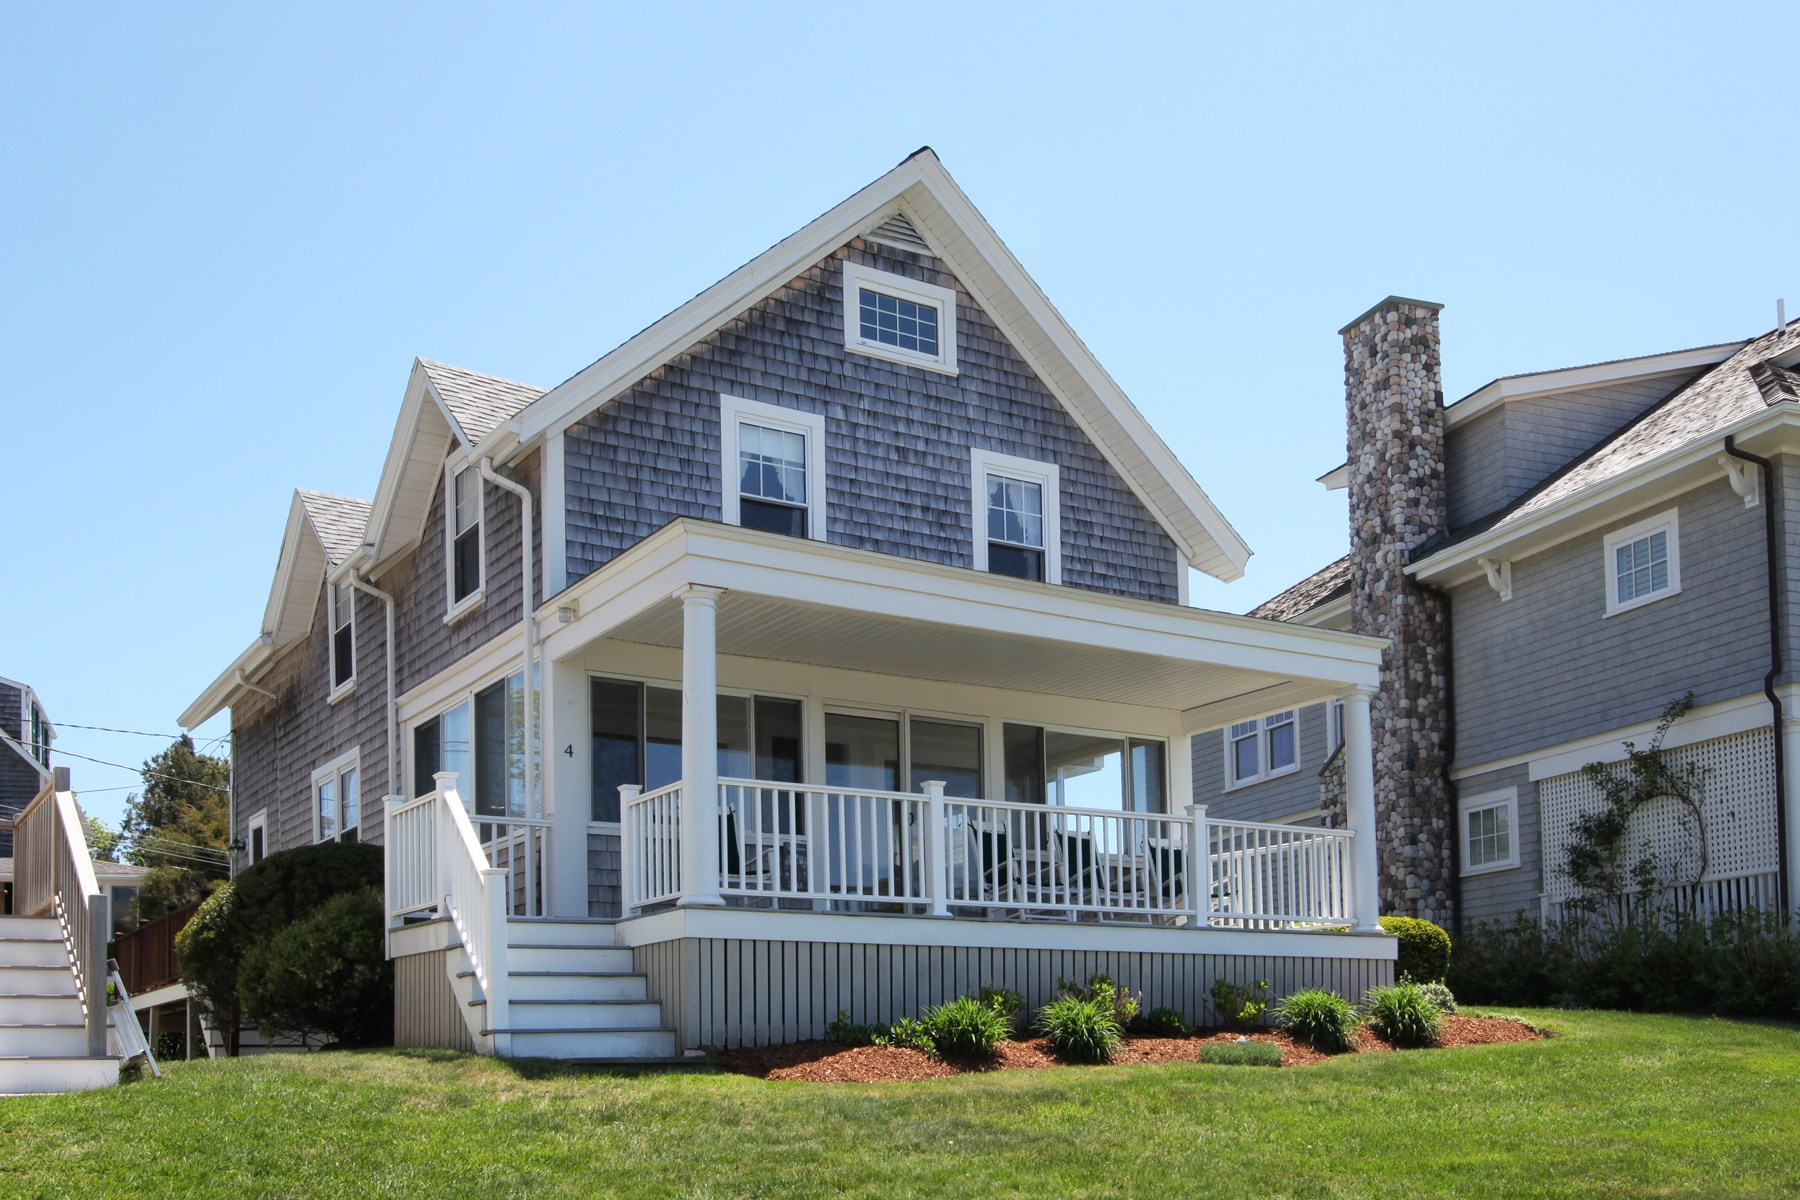 Single Family Home for Sale at Beautiful, Rare Beachfront Opportunity 4 Circle Drive Falmouth, Massachusetts 02556 United States